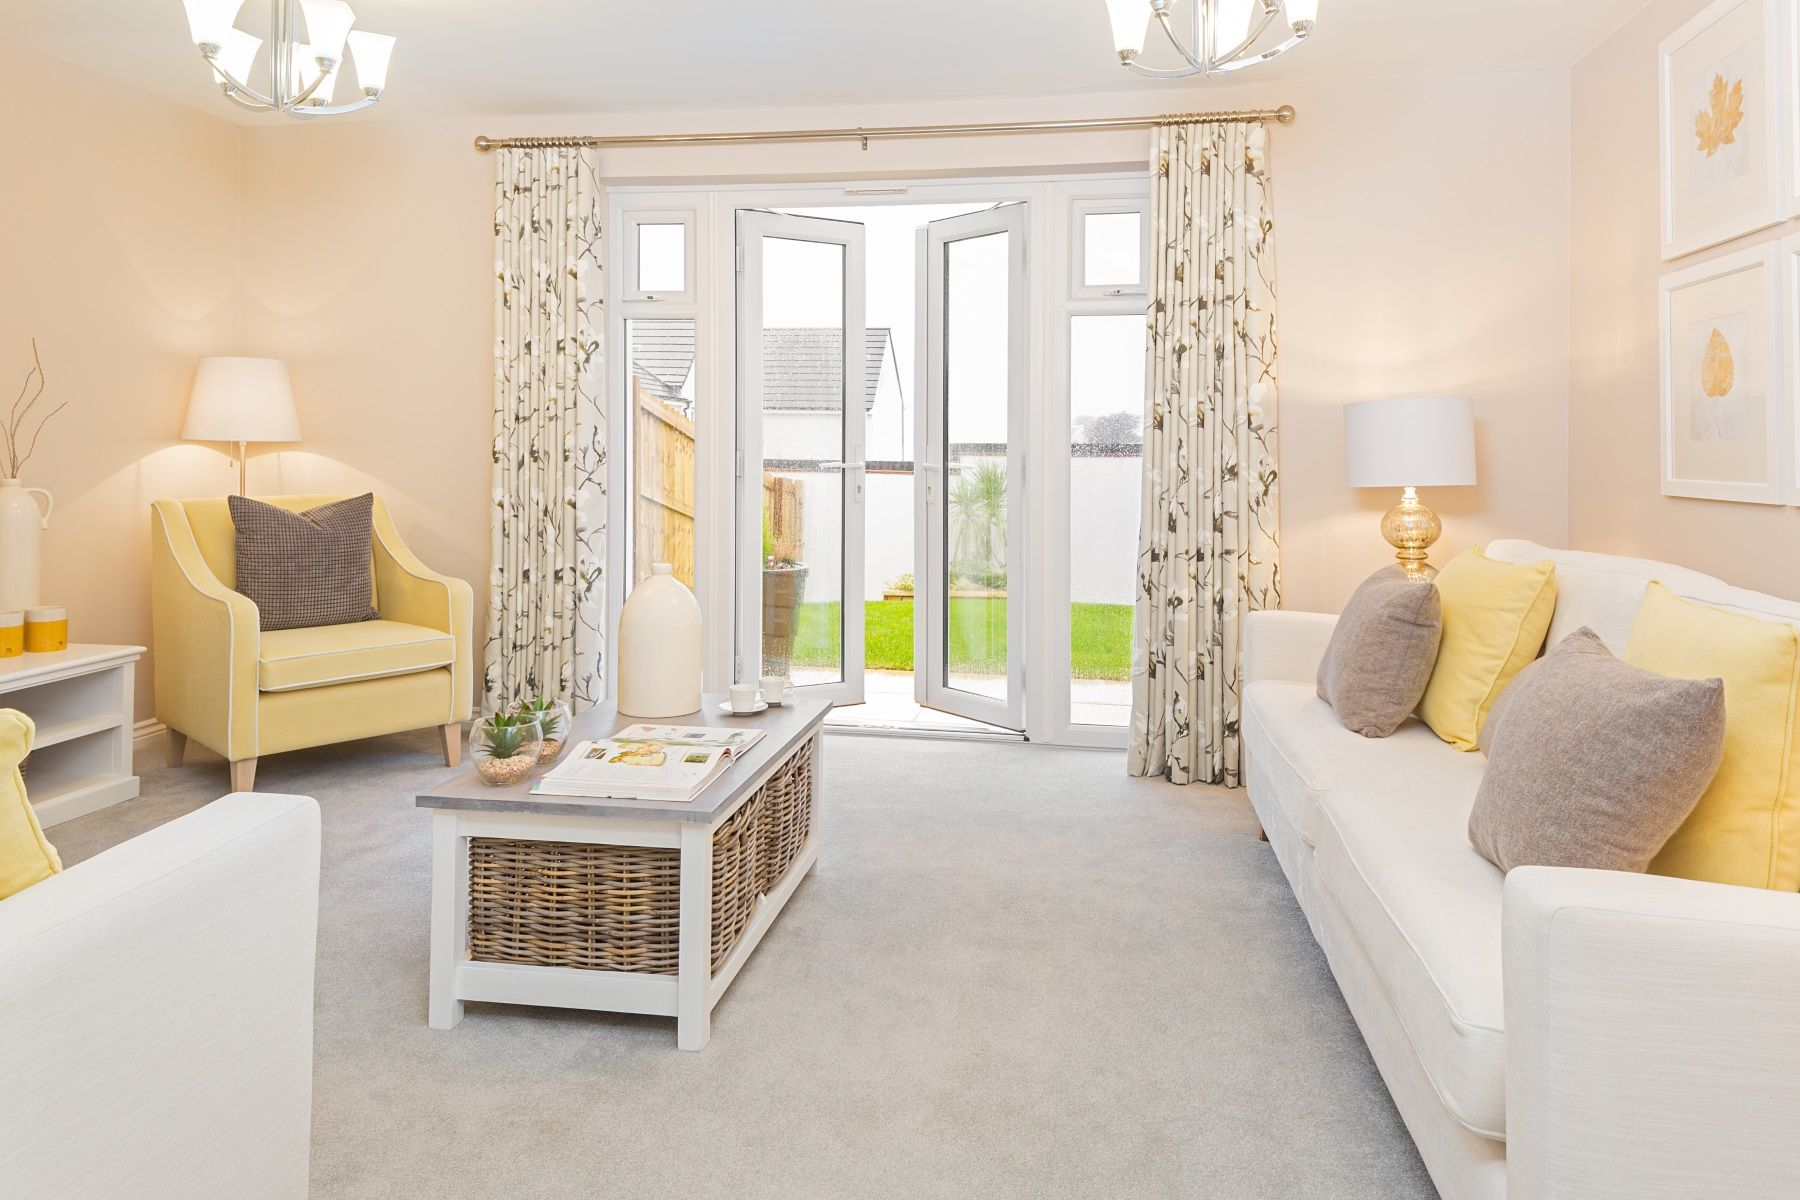 TW Exeter - Sherford - Flatford example living room 2